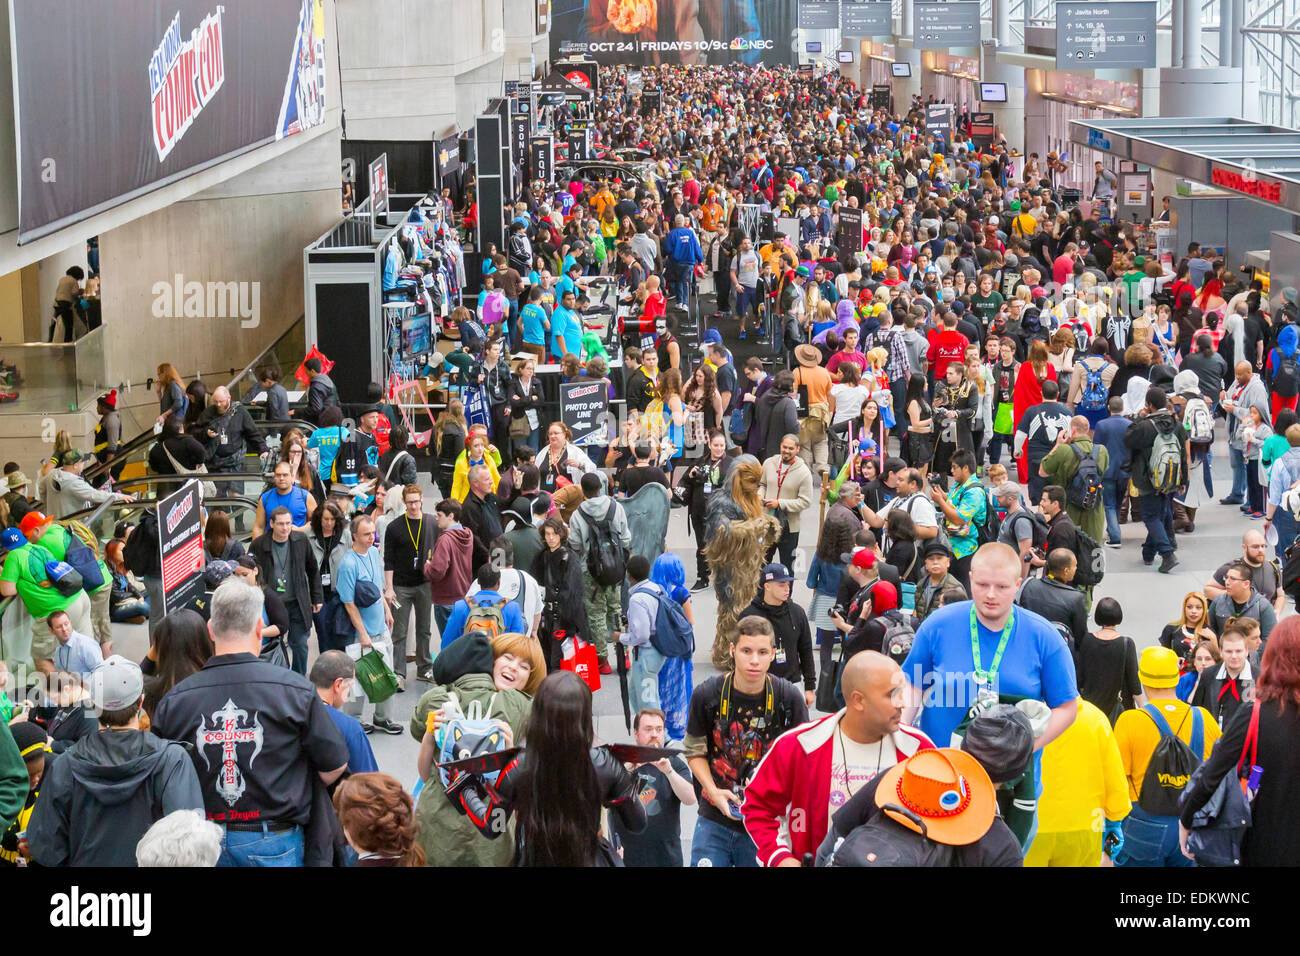 A crowd of visitors and fans to the New York ComicCon comic book and movie convention. - Stock Image